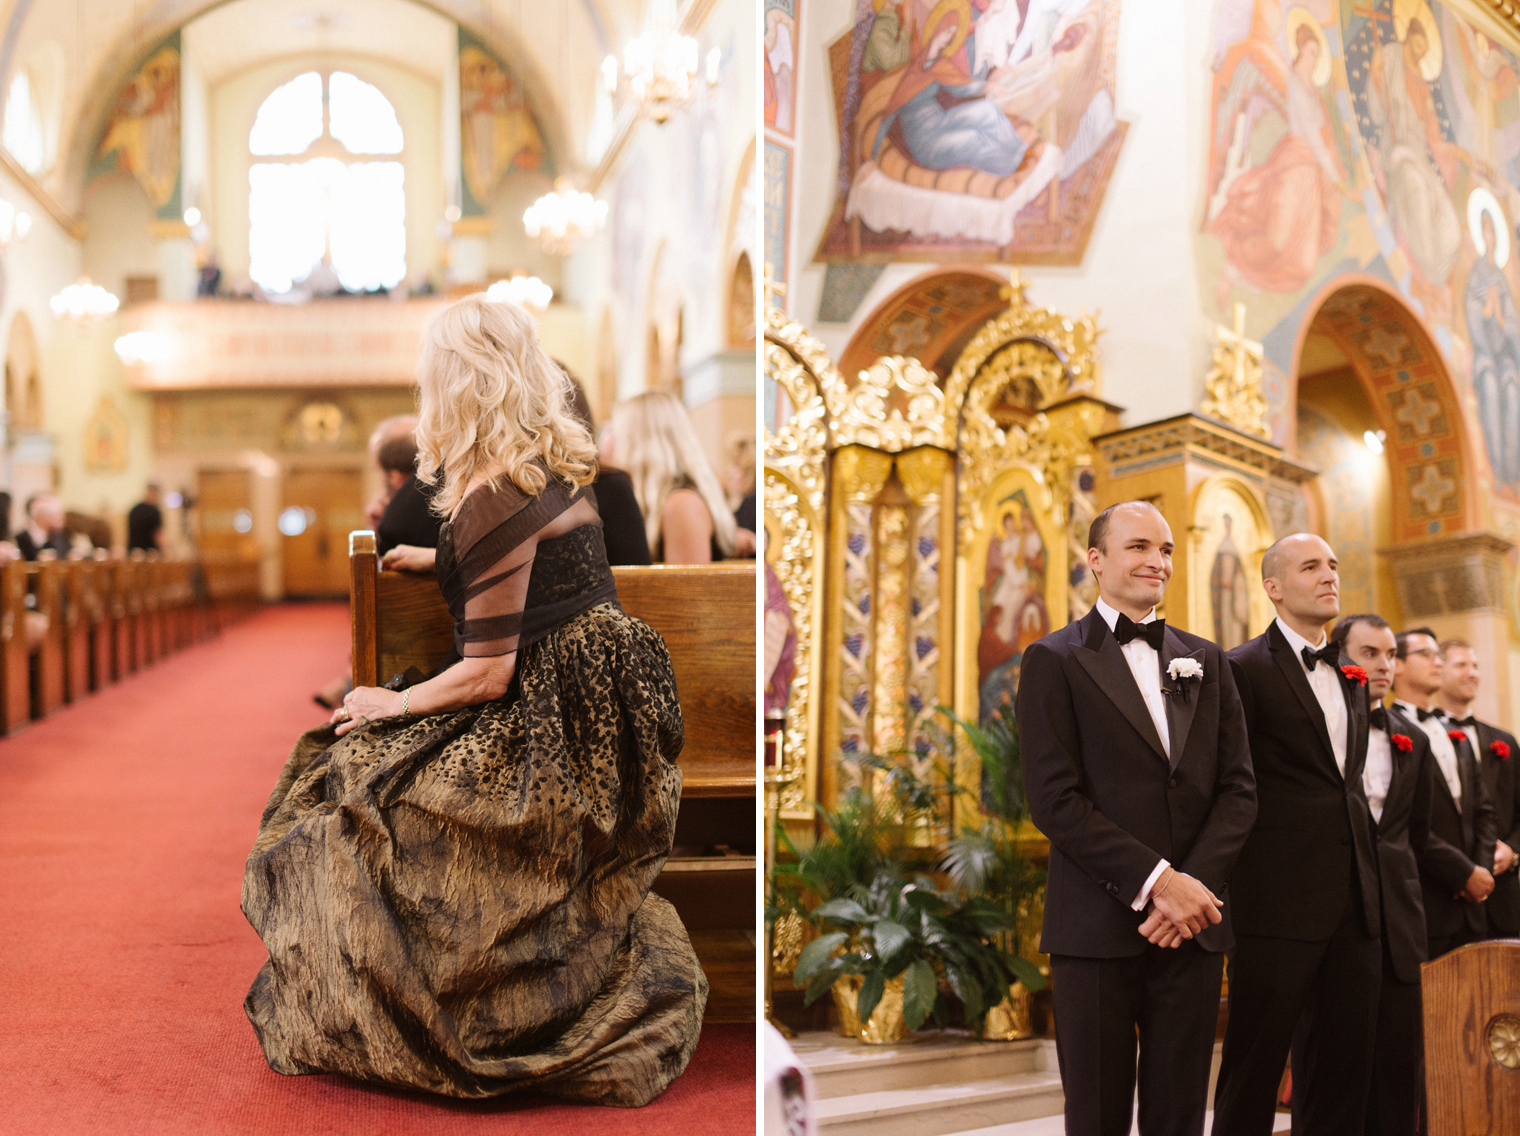 Mother of the bride and the groom watch for the bride coming down the aisle during a Ukrainian Orthodox Wedding Ceremony in Hamtramck Michigan by photographer Heather Jowett.